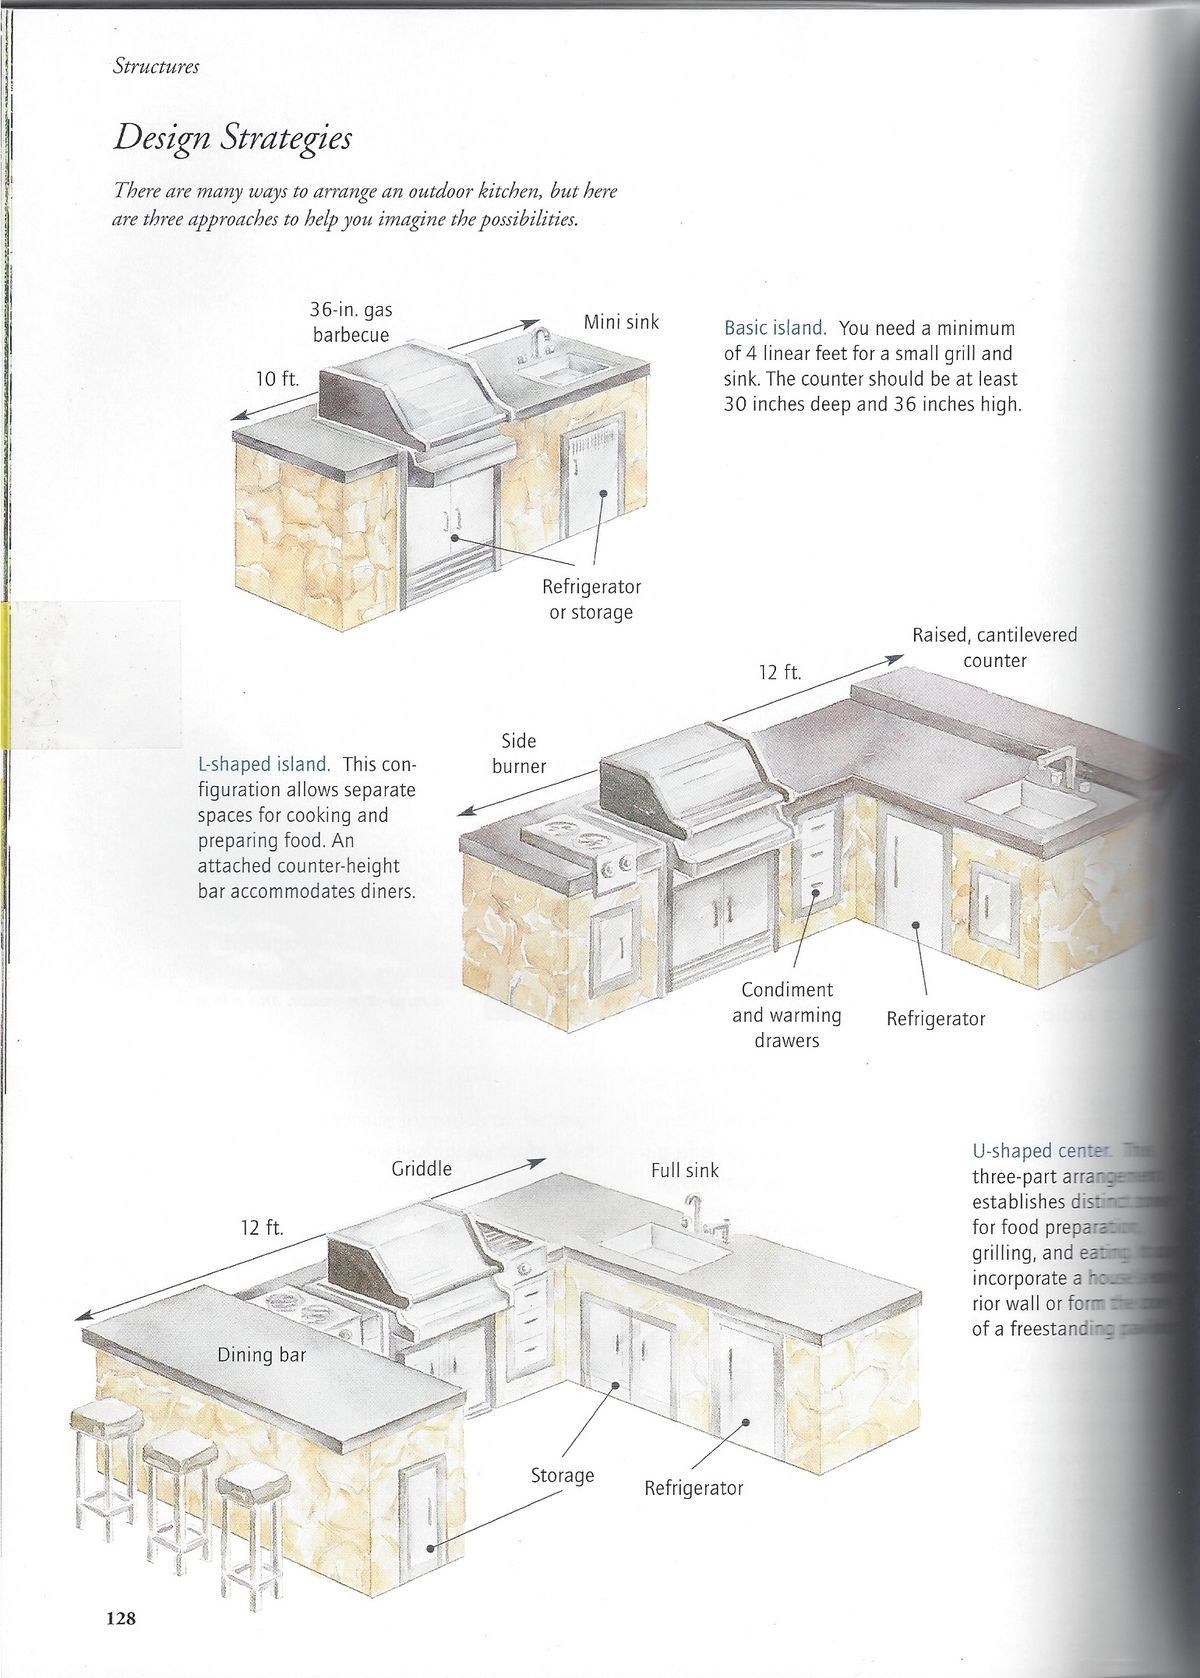 10 X 12 Kitchen Layout | Outdoor Kitchen Design Plans & Ideas ...